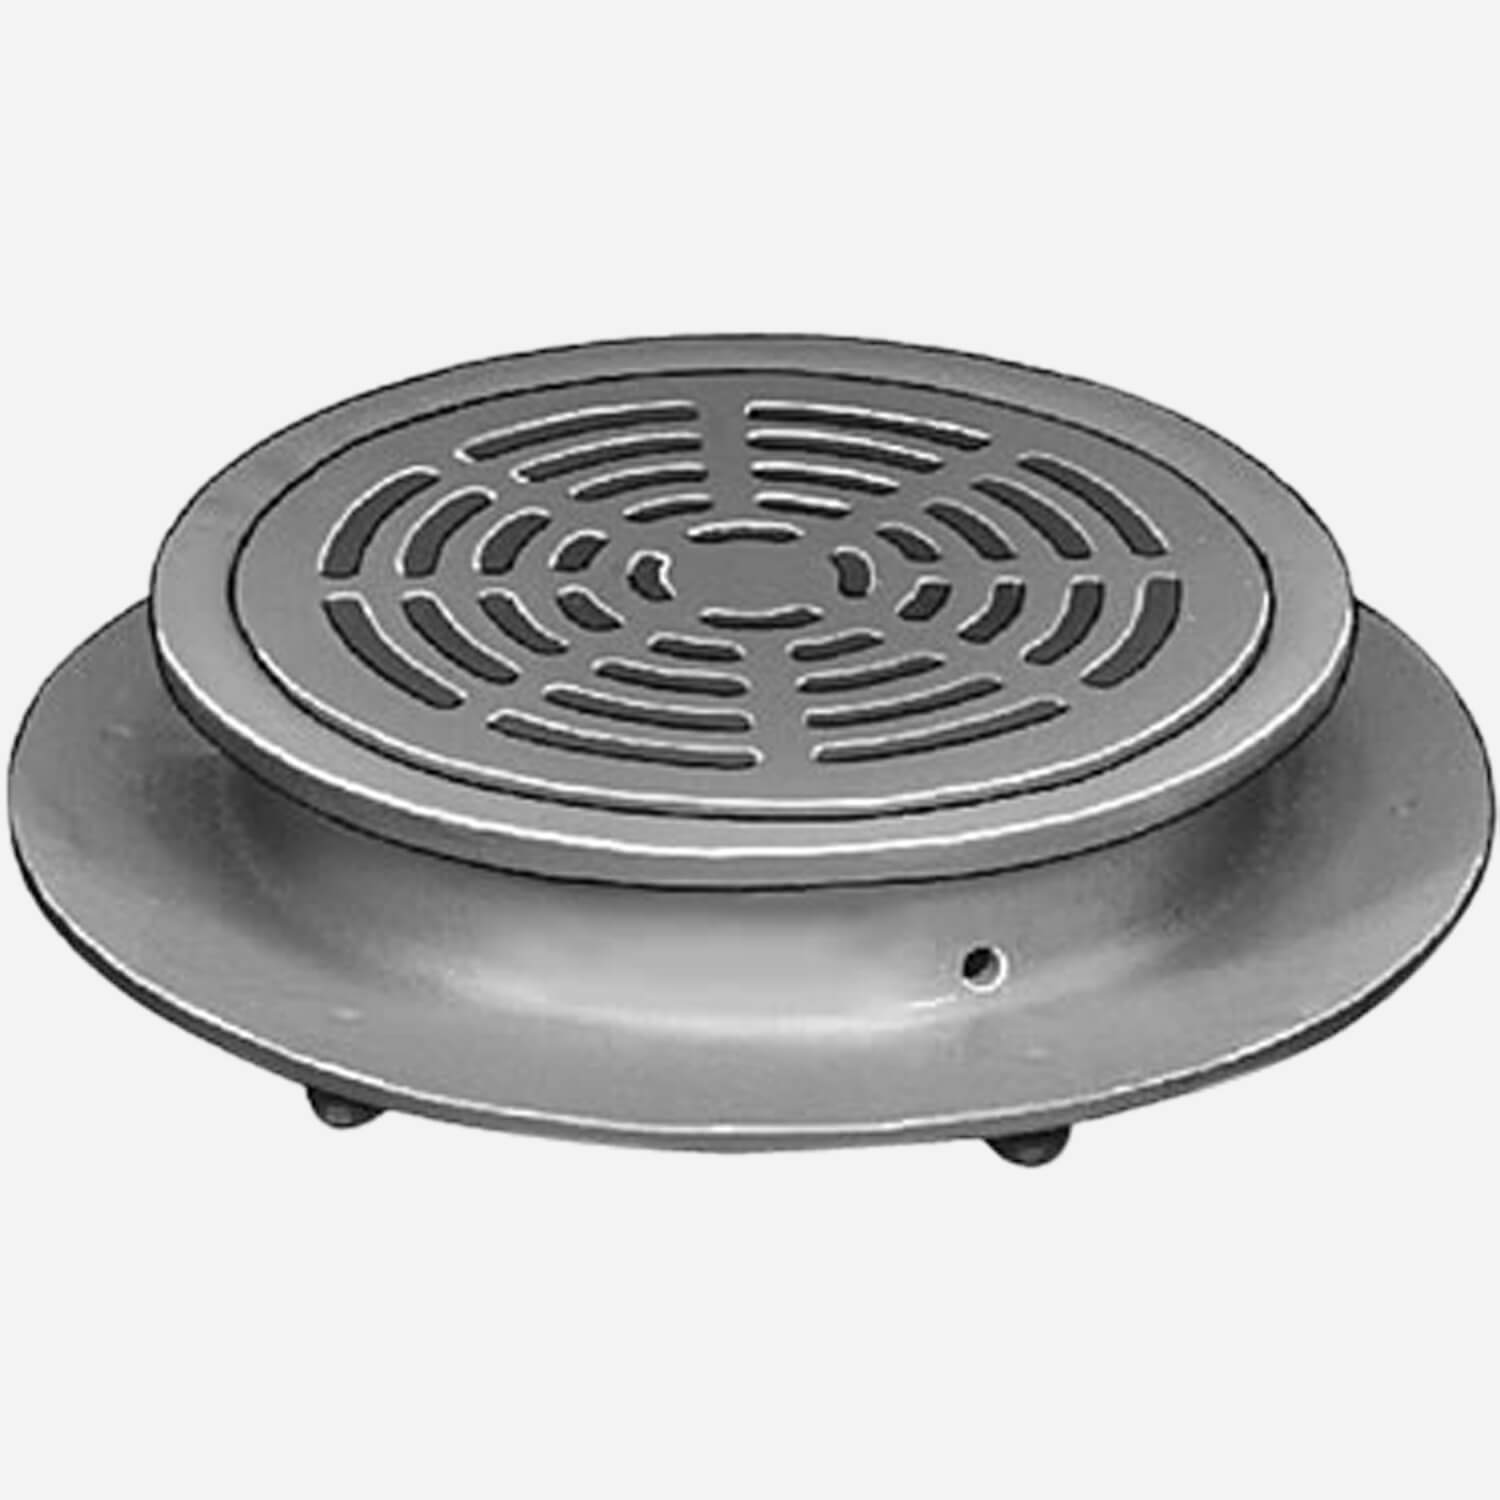 Sani-Ceptor® Sanitary Acid Resistant Coated Sanitary Floor and Indirect Waste Drains with Shallow Receptor and ARC Round Non-Traffic Top